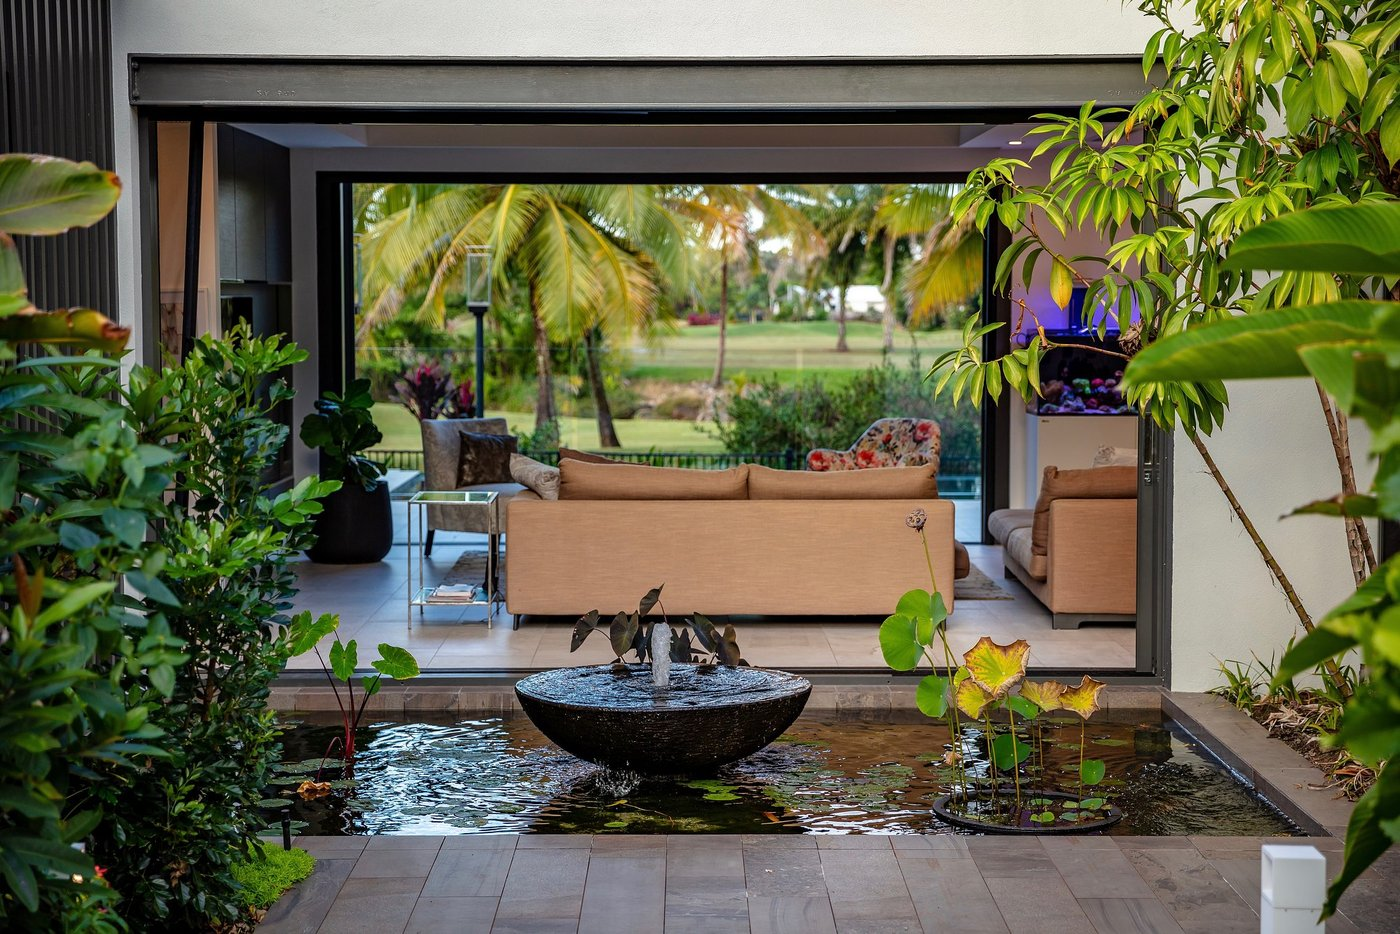 Water feature with lounge room in the background